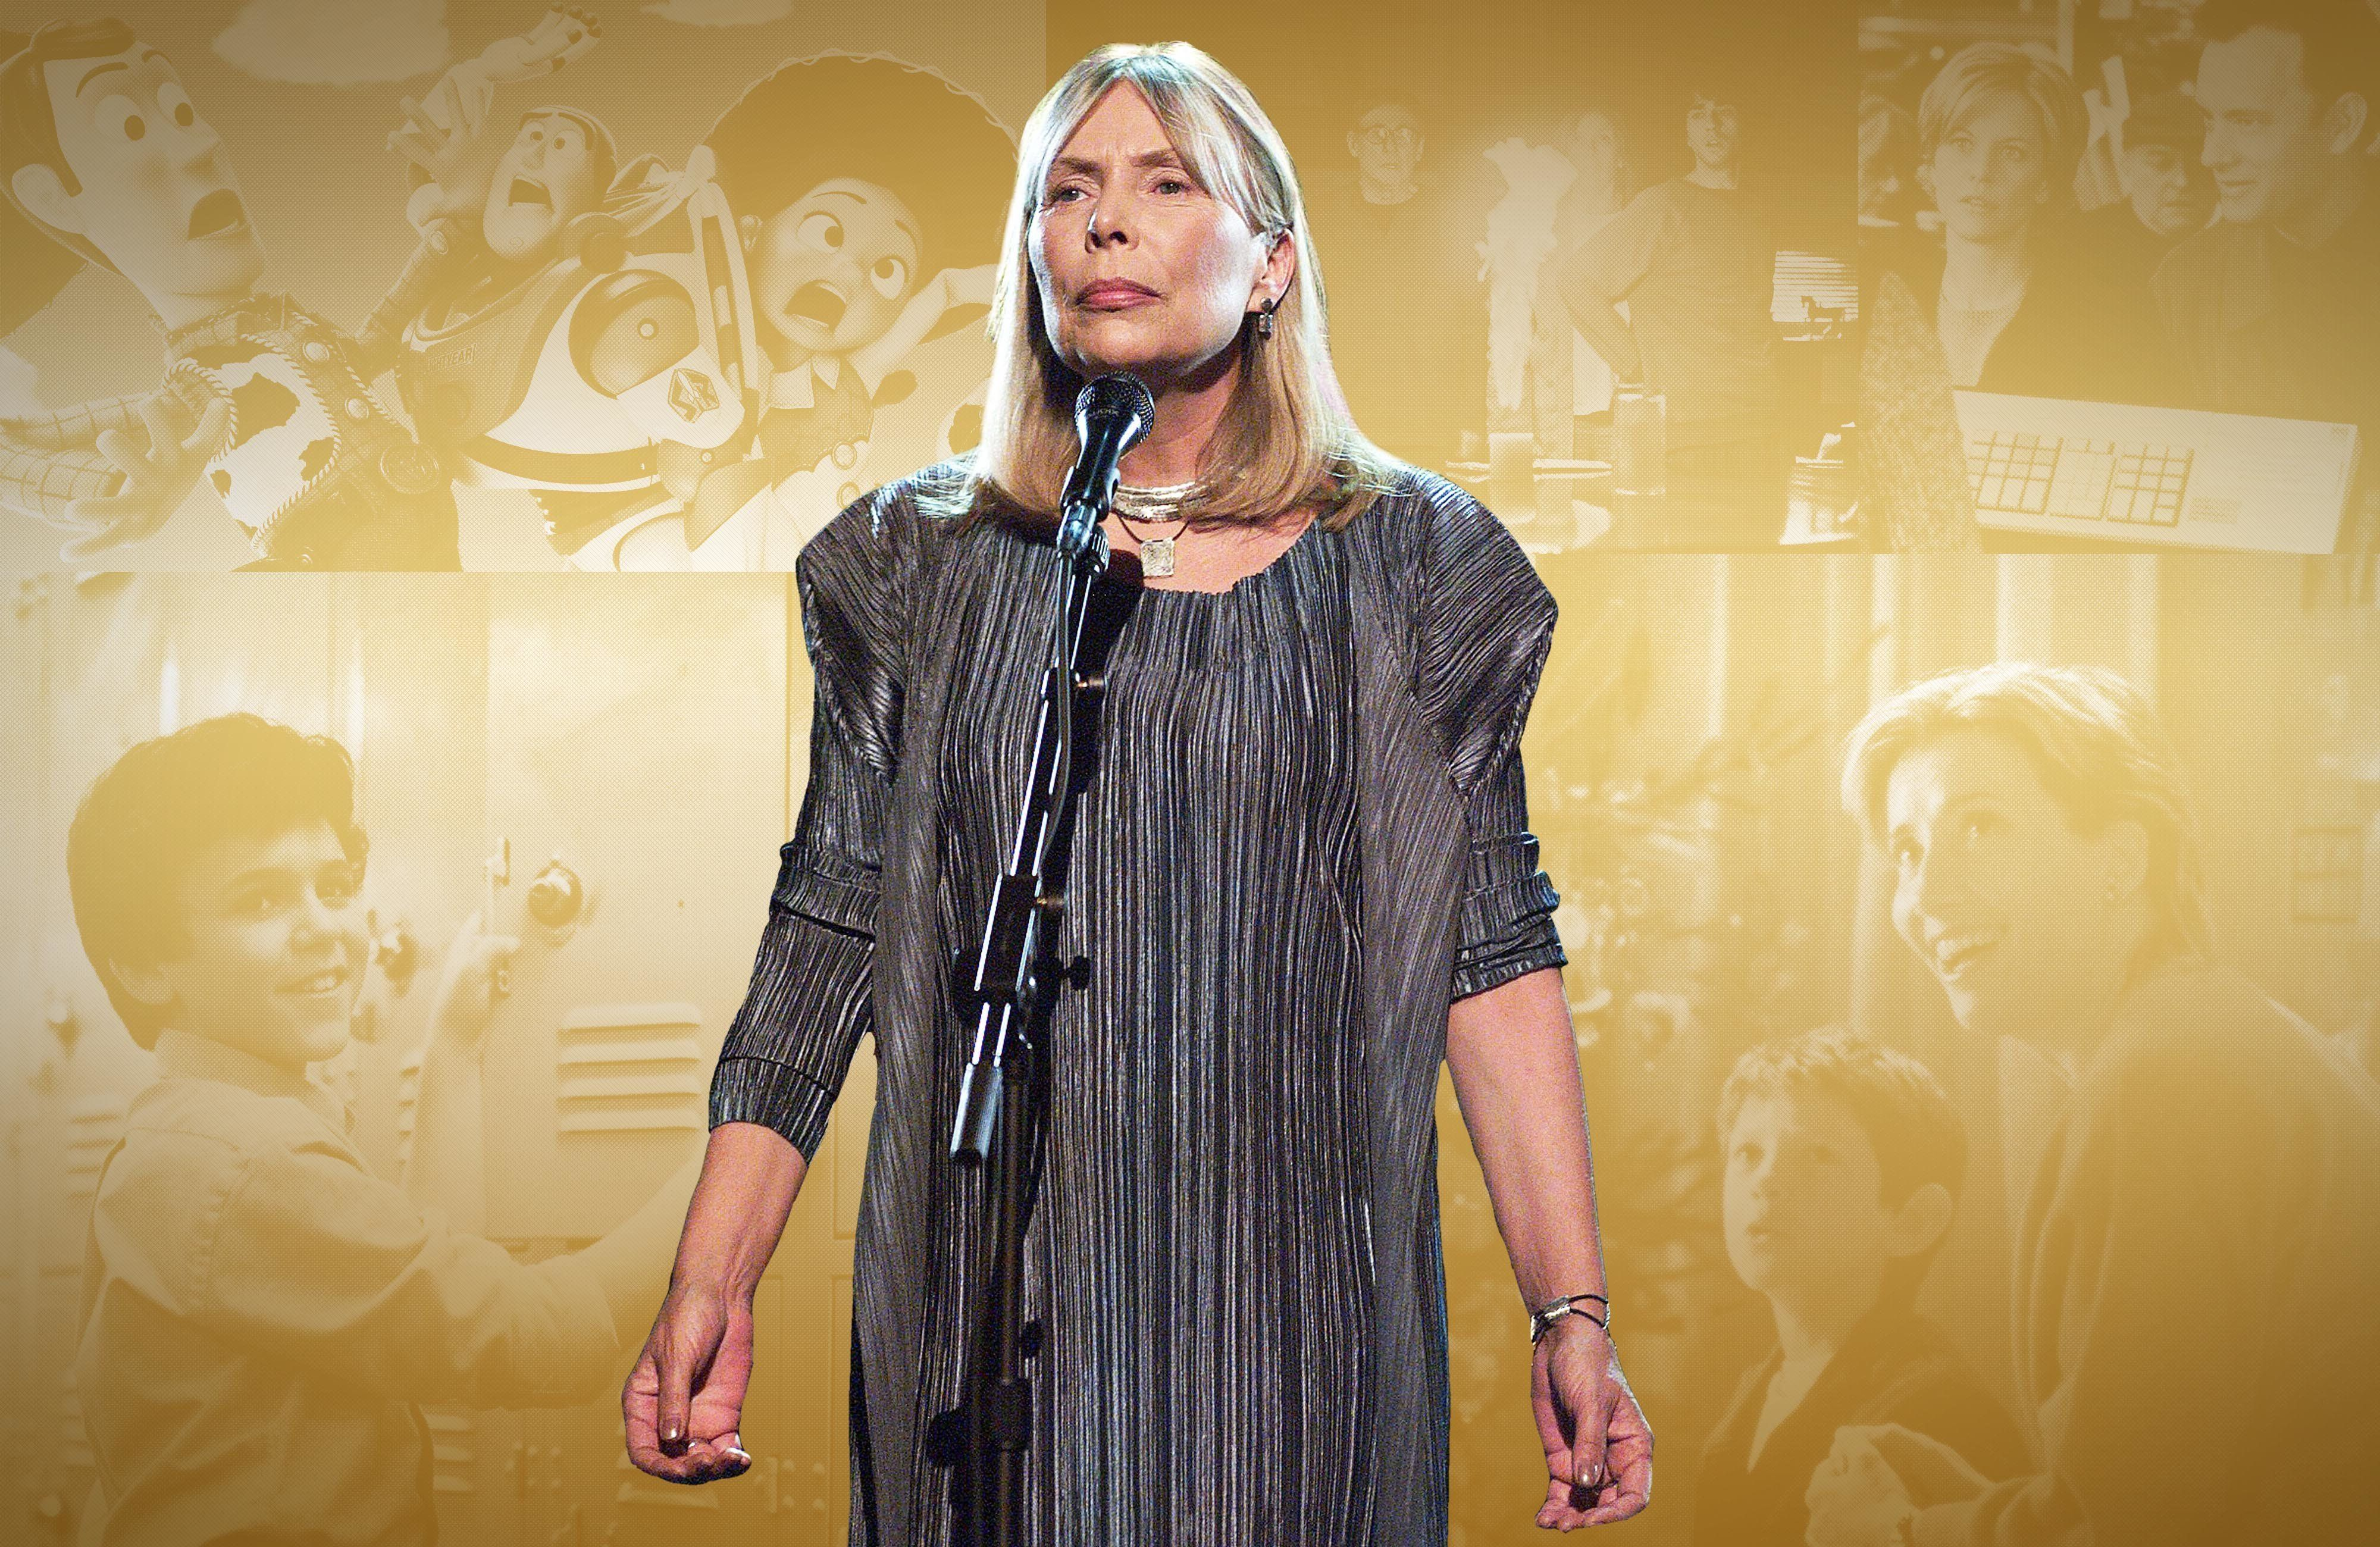 The Agony And Ecstasy Of Joni Mitchell's 'Both Sides Now,' An Inescapable Soundtrack